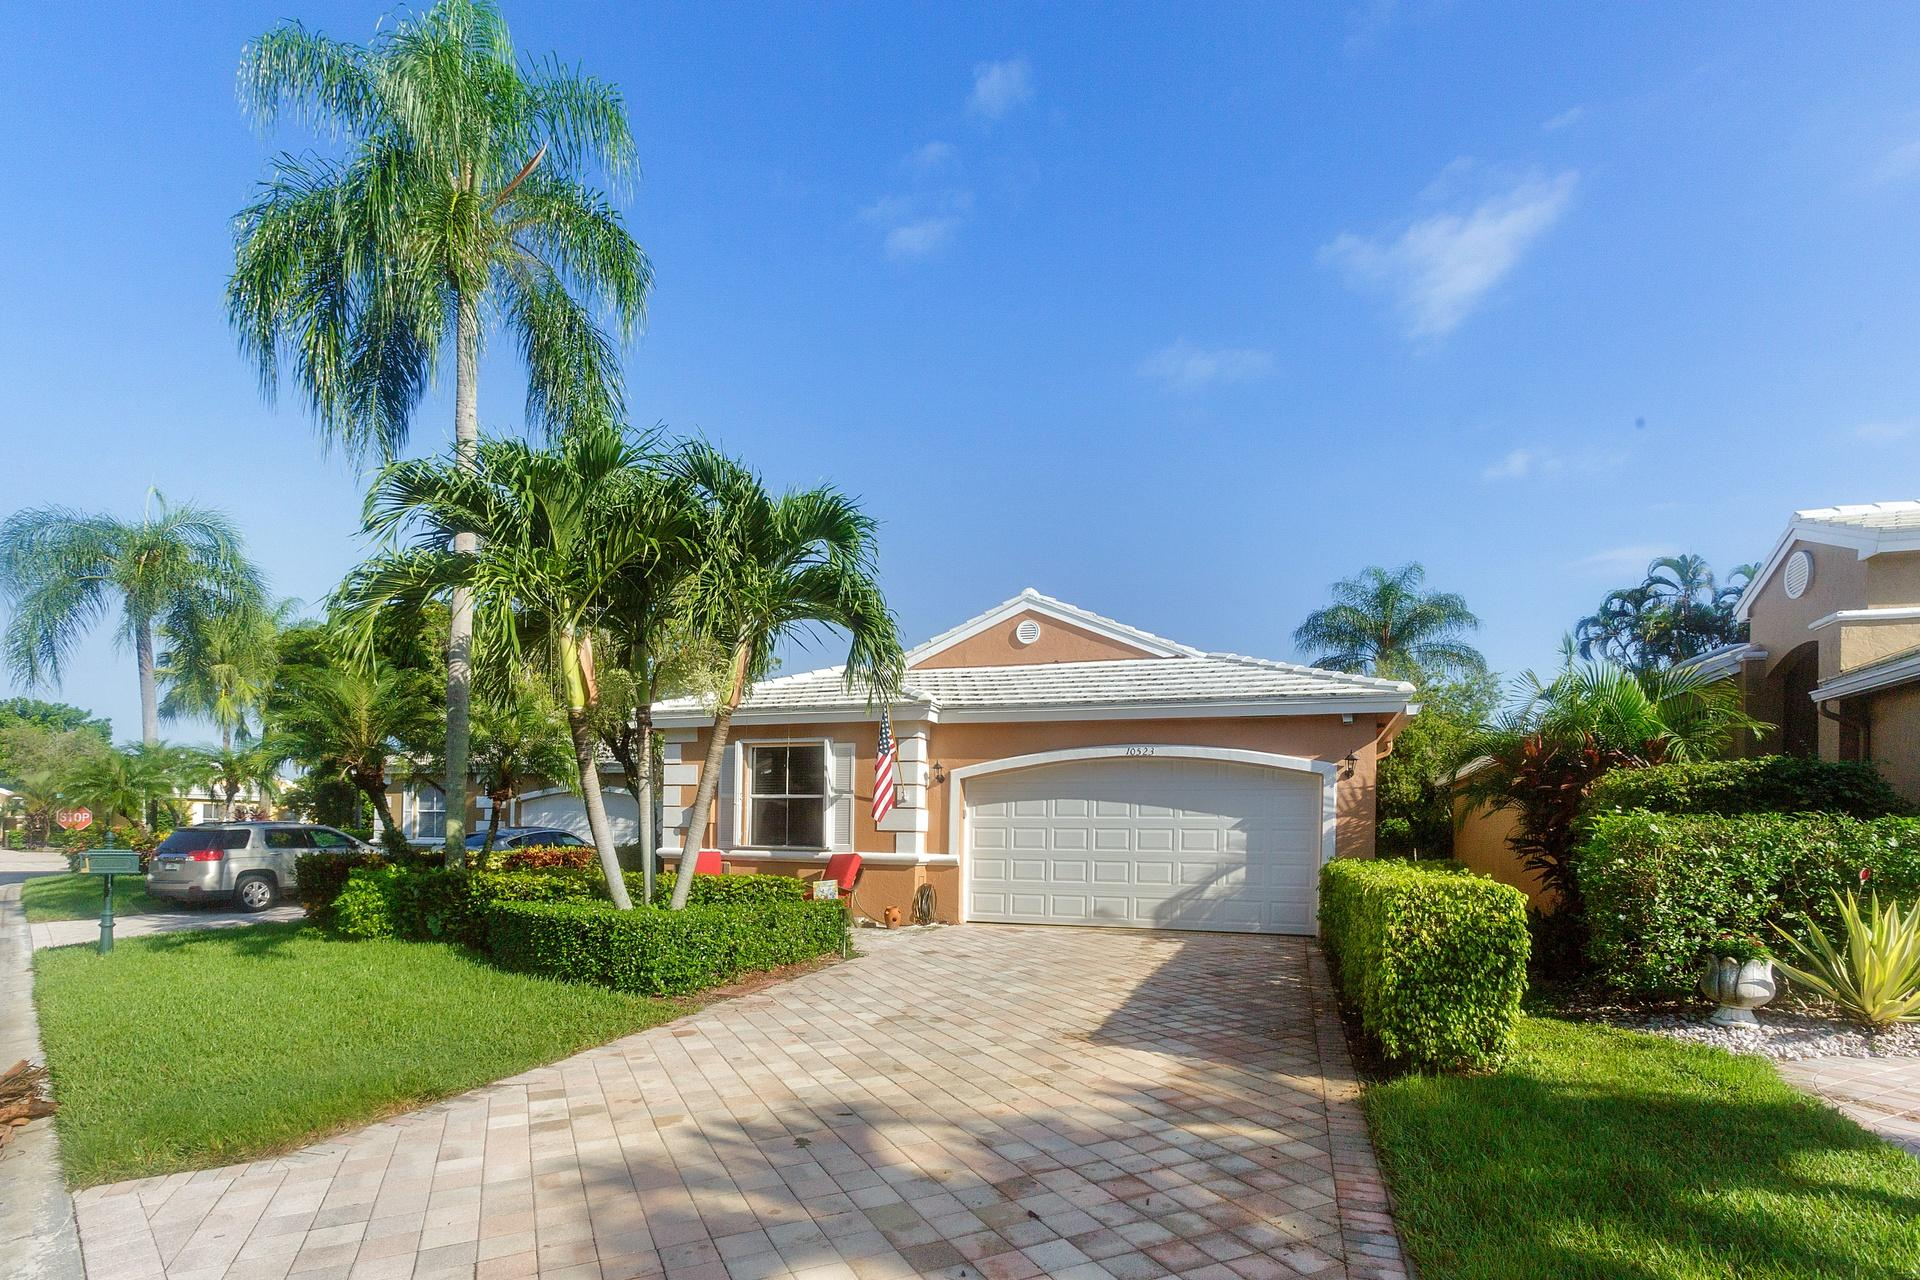 Home for sale in Wycliffe Lake Worth Florida